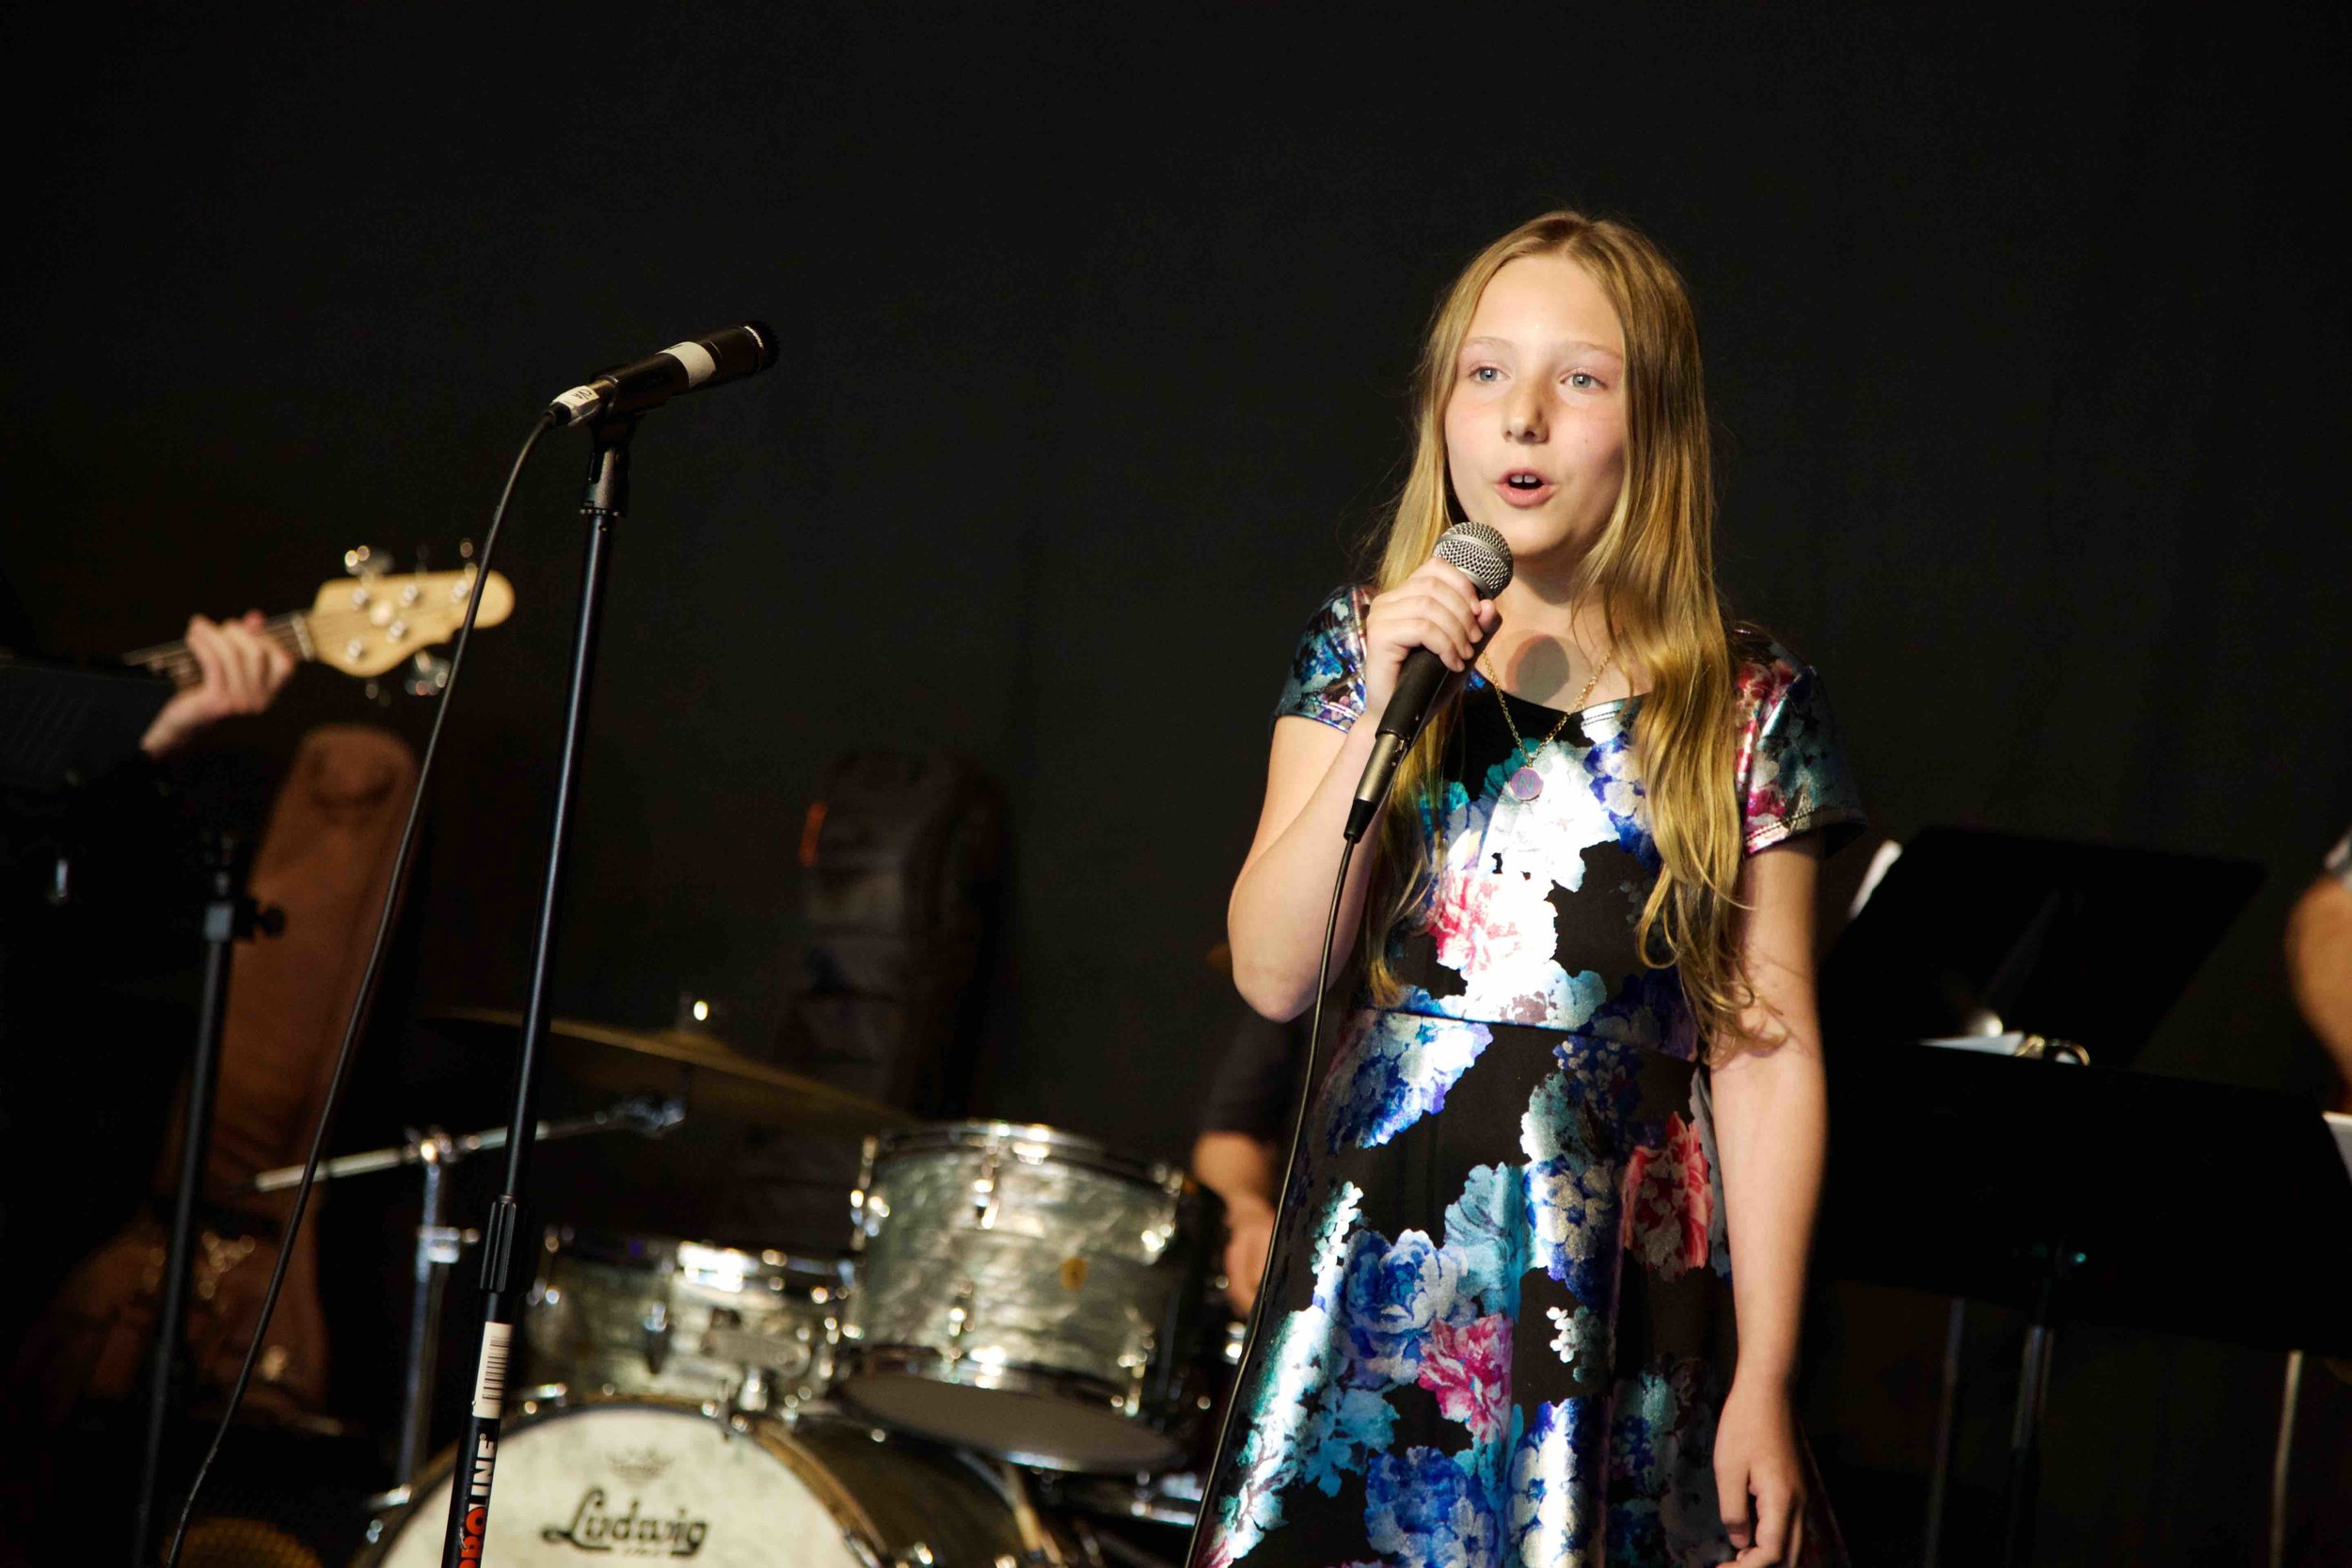 Sammamish singing lessons for kids, teens, and adults at Cascade Voice Academy (formerly Issaquah Voice Studio)